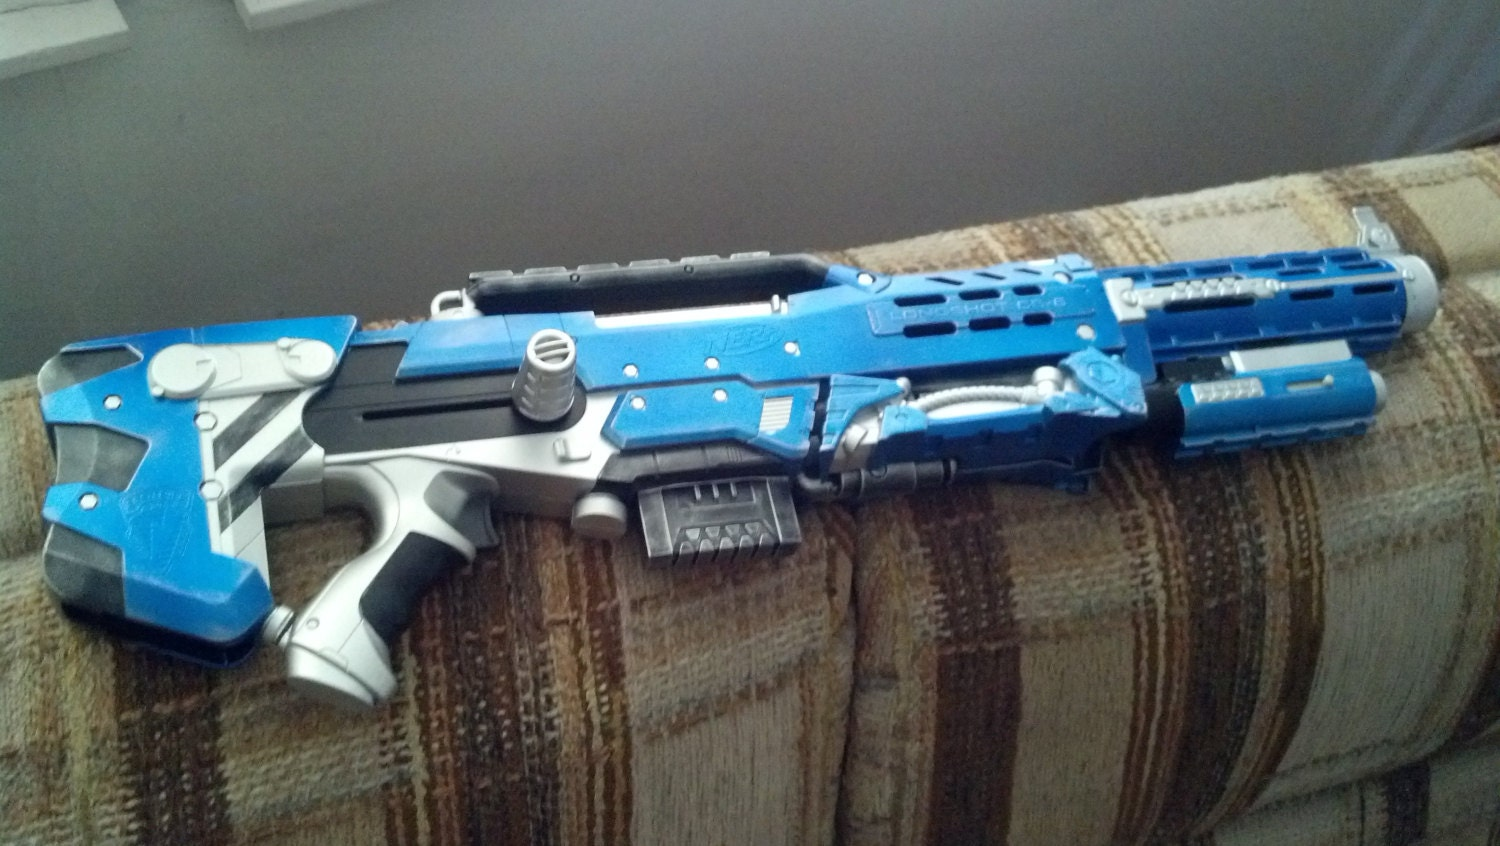 Custom Painted Nerf Gun Recon CS-6 For Cosplay, Dieselpunk, Steampunk  Comicon